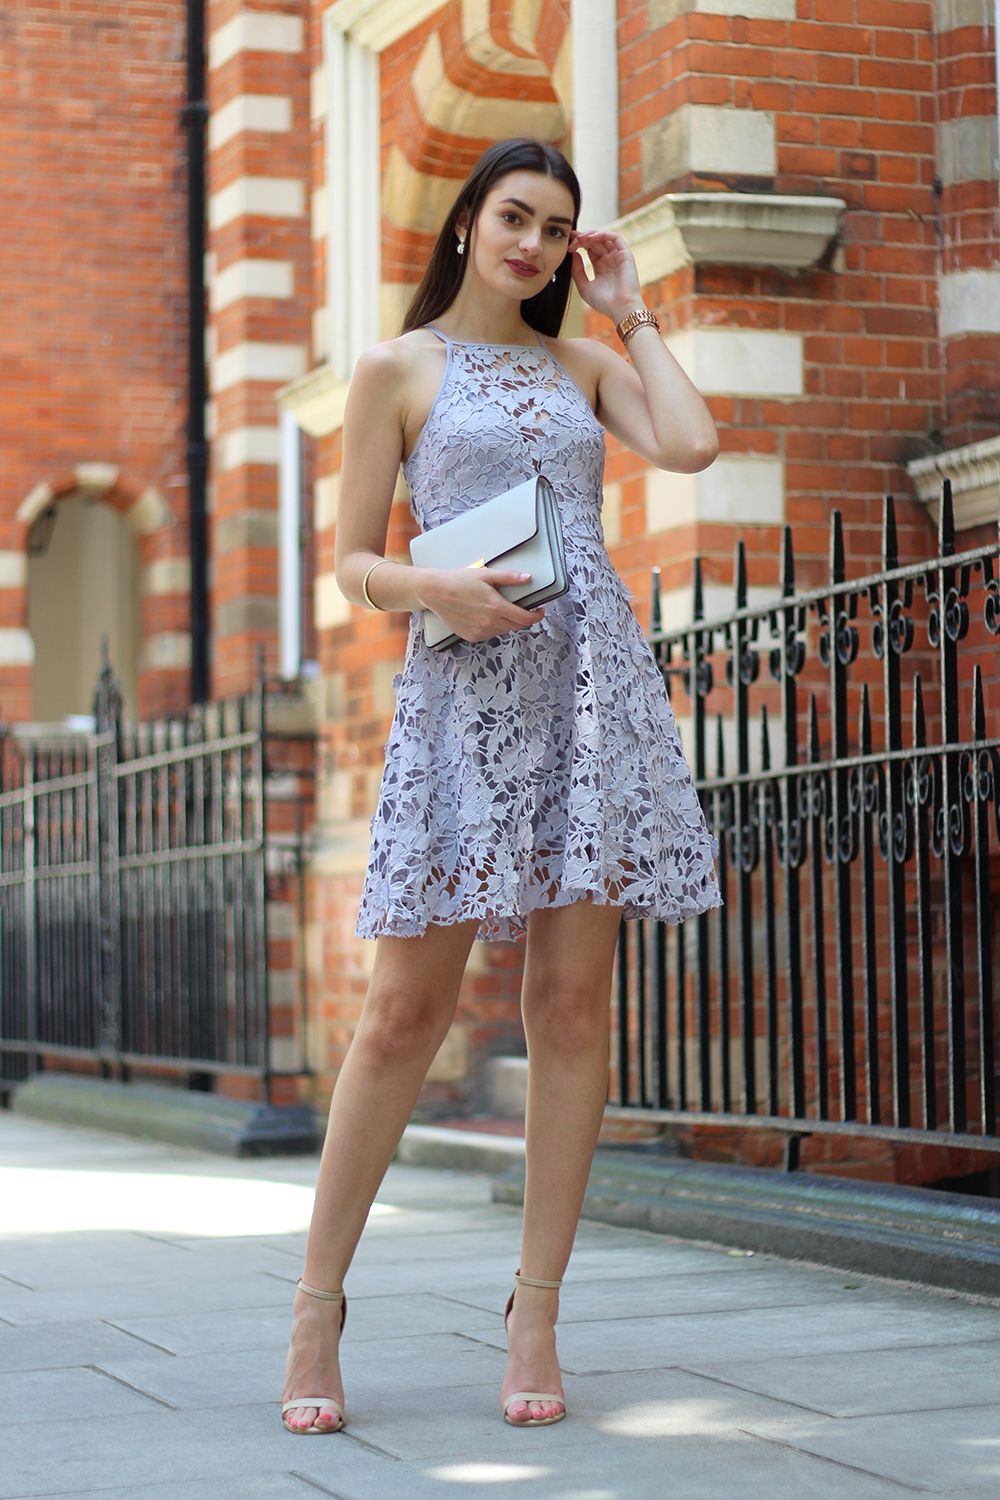 5 things to consider when buying your wedding guest outfit